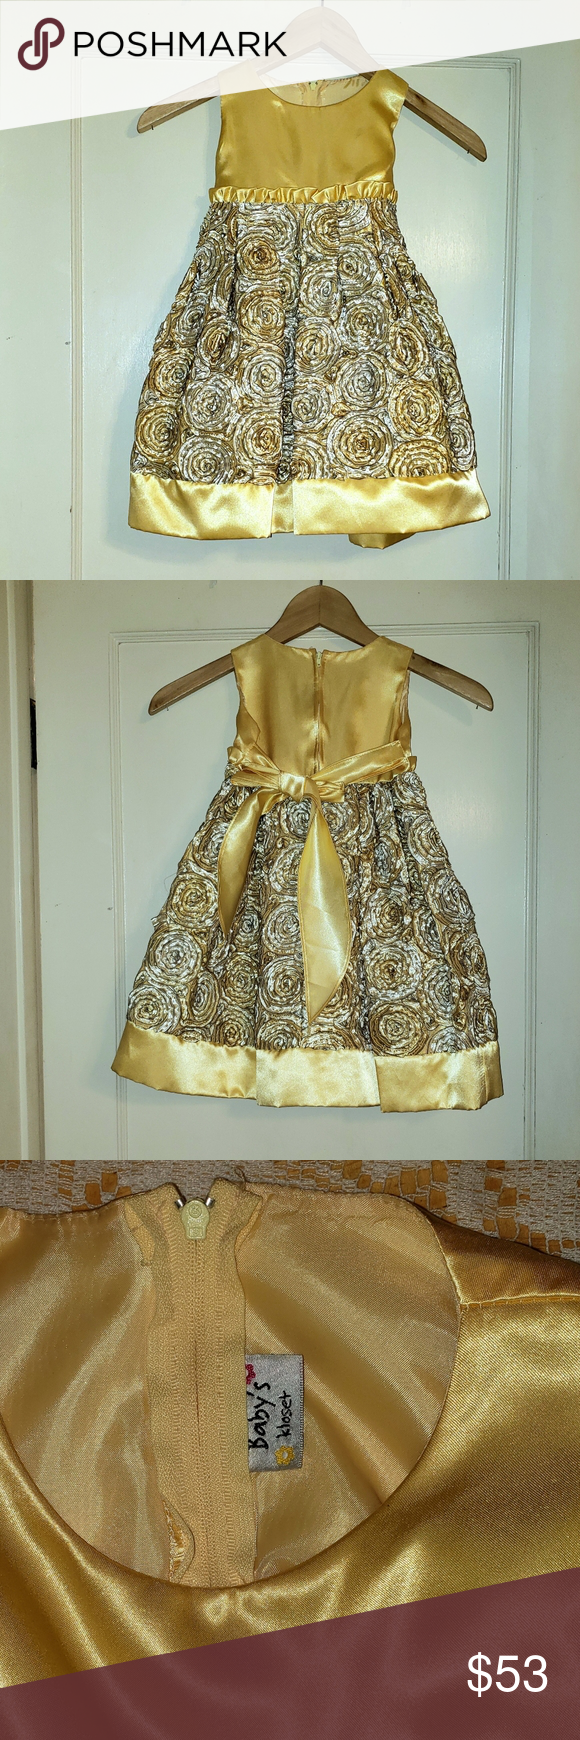 Baby S Kloset Gold Party Holiday Dress 4t 4t Dress Holiday Dresses Dresses [ 1740 x 580 Pixel ]